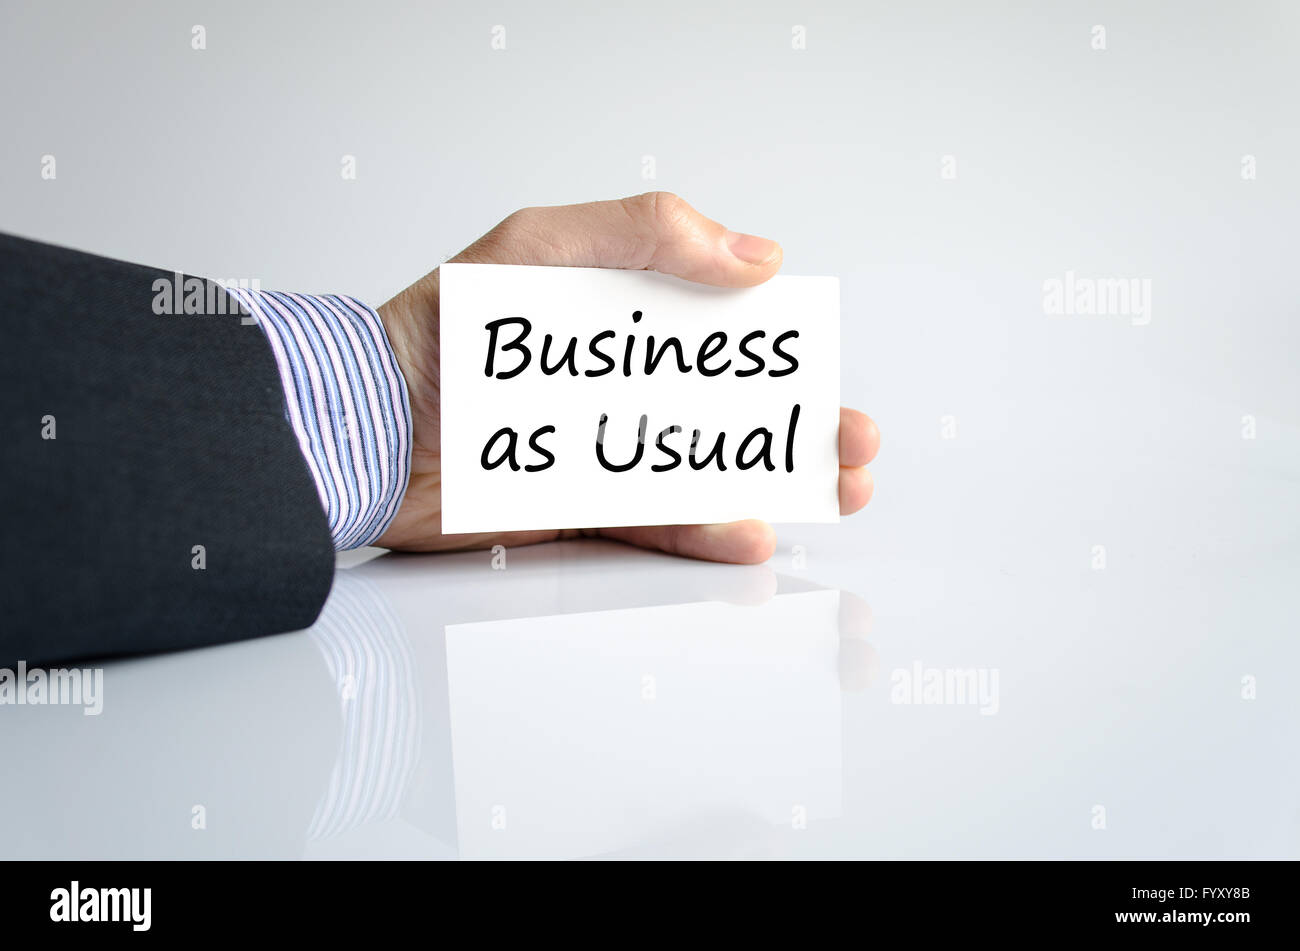 Business as usual text concept - Stock Image